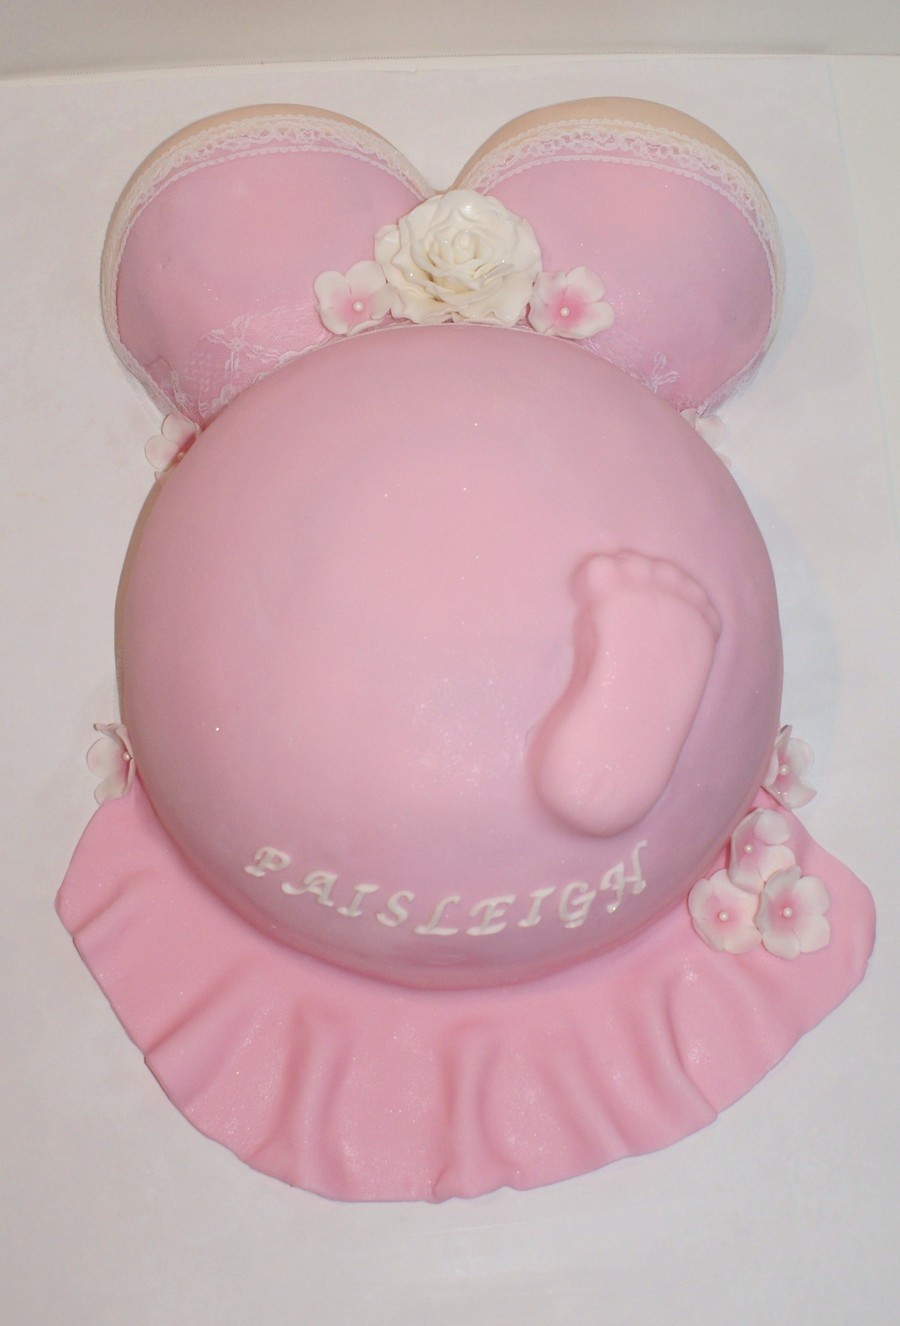 Pregnant Belly Baby Shower Cake on Cake Central